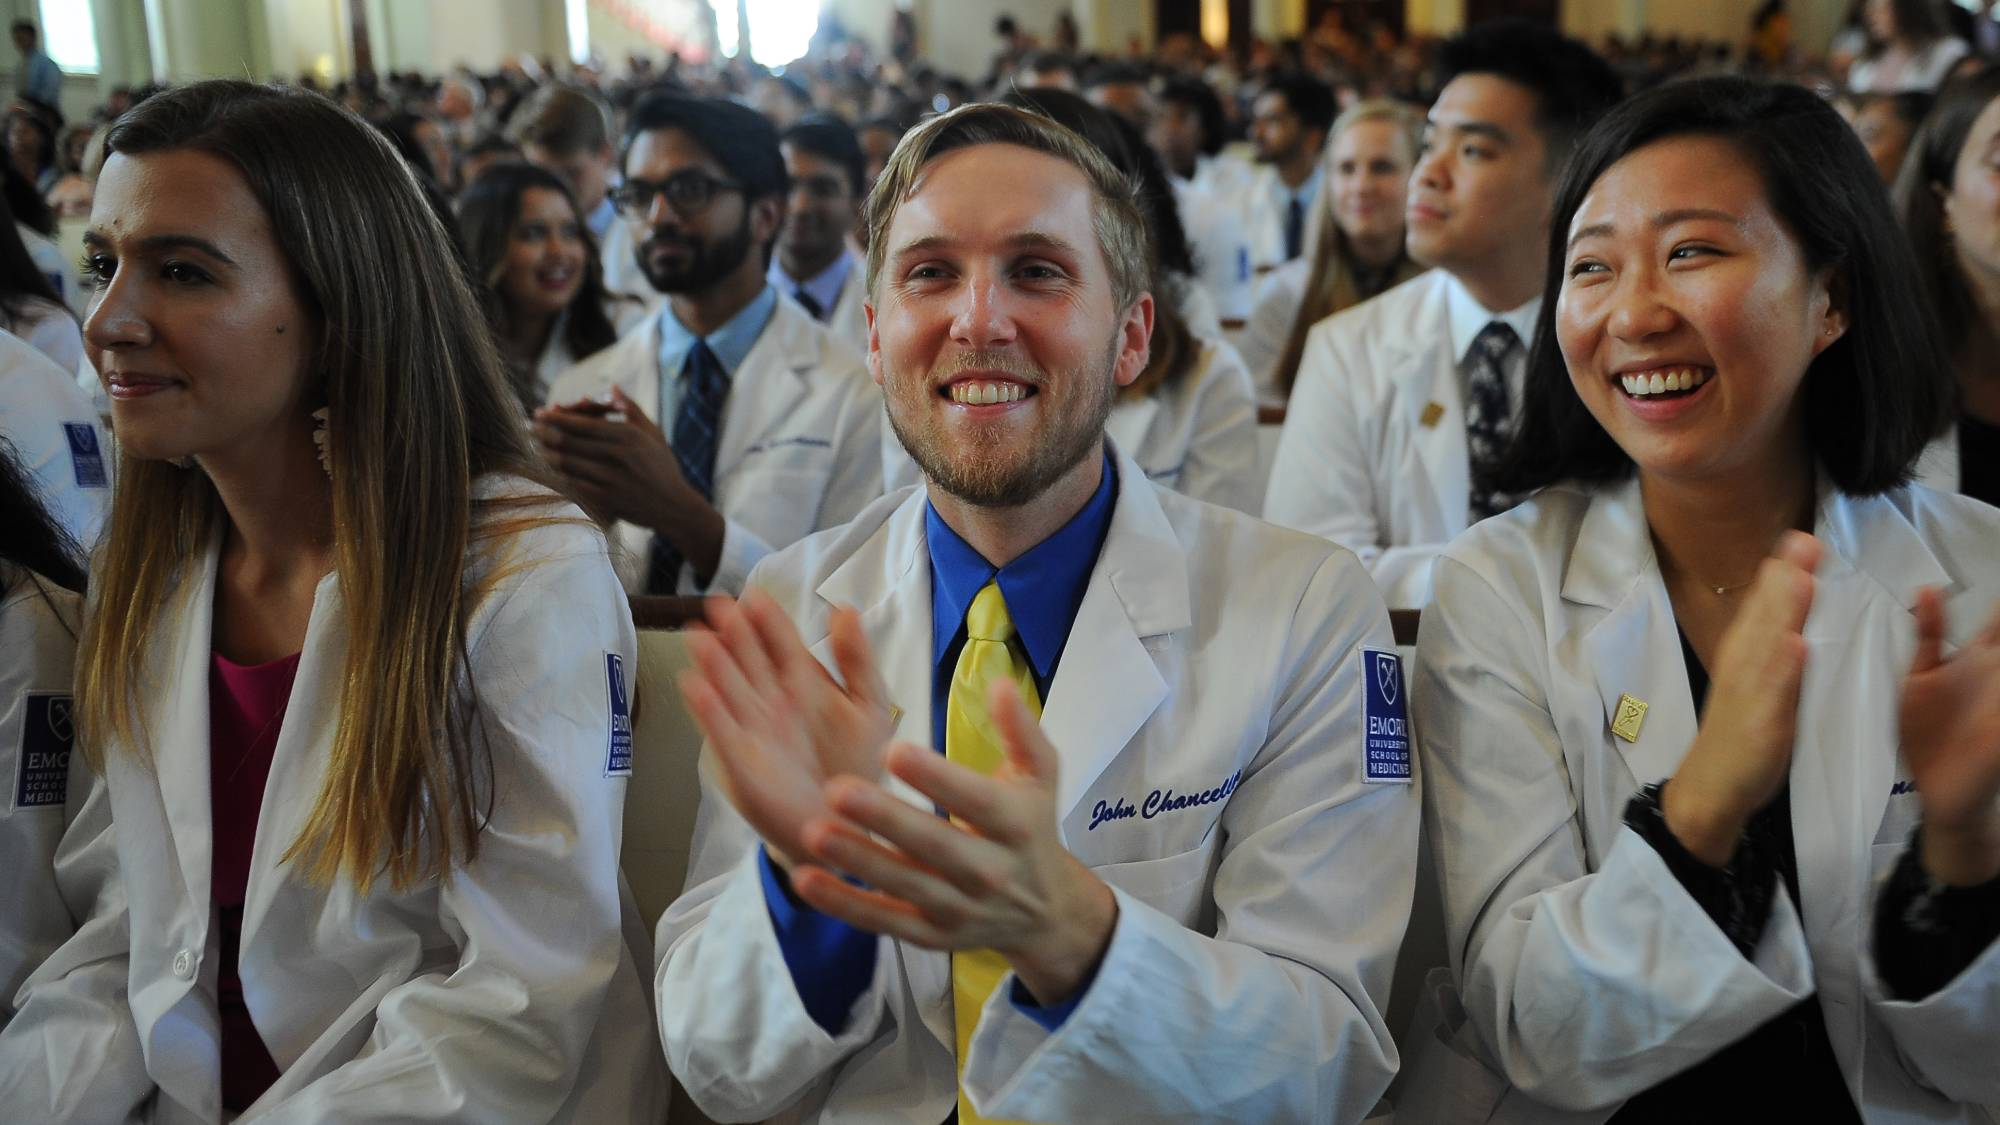 students in white coats sitting in a full audience